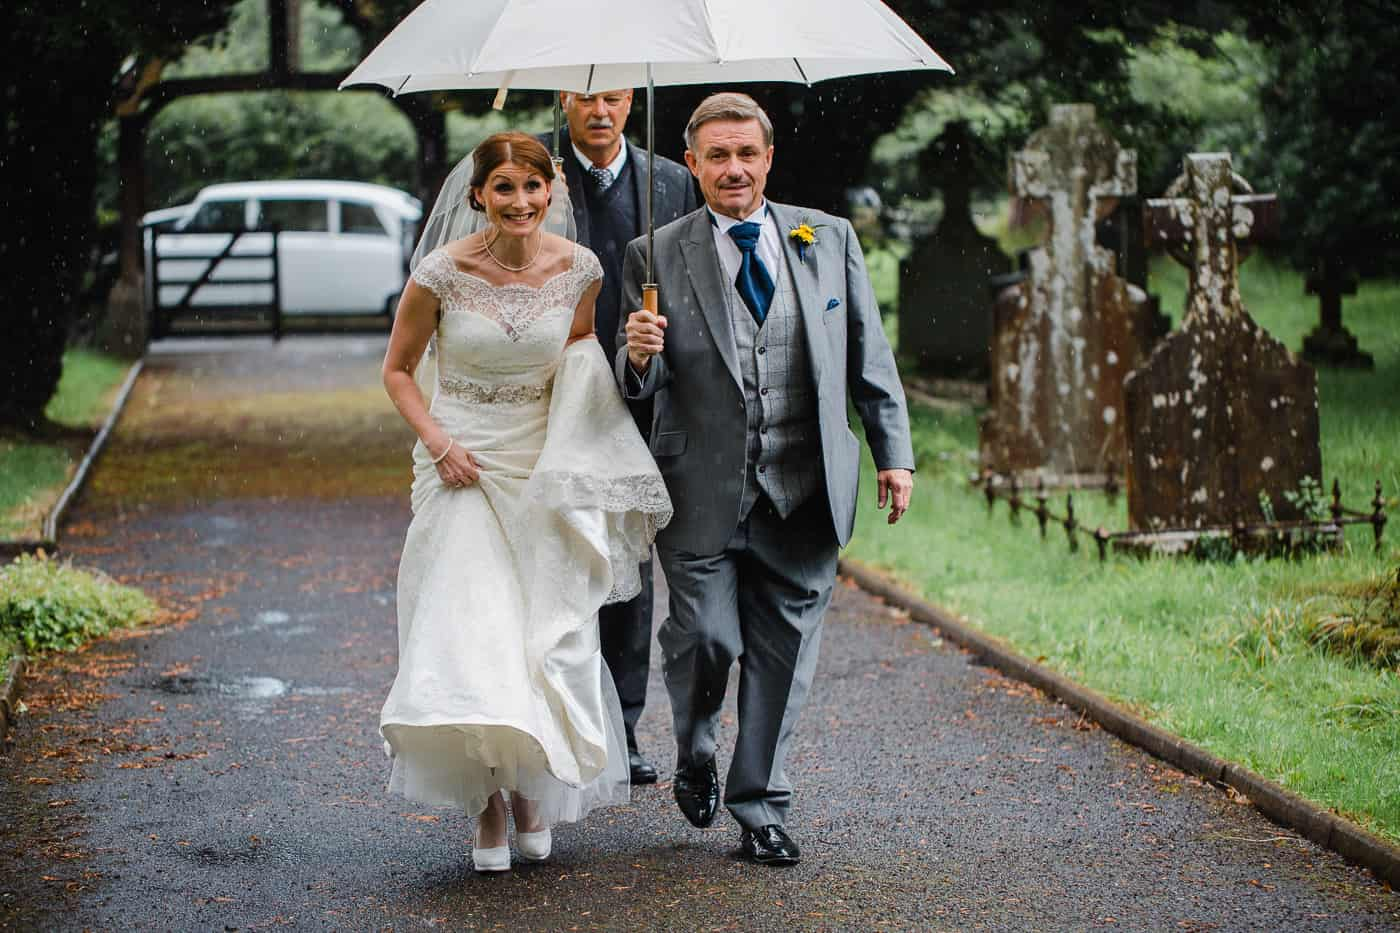 Rainy wedding arrival